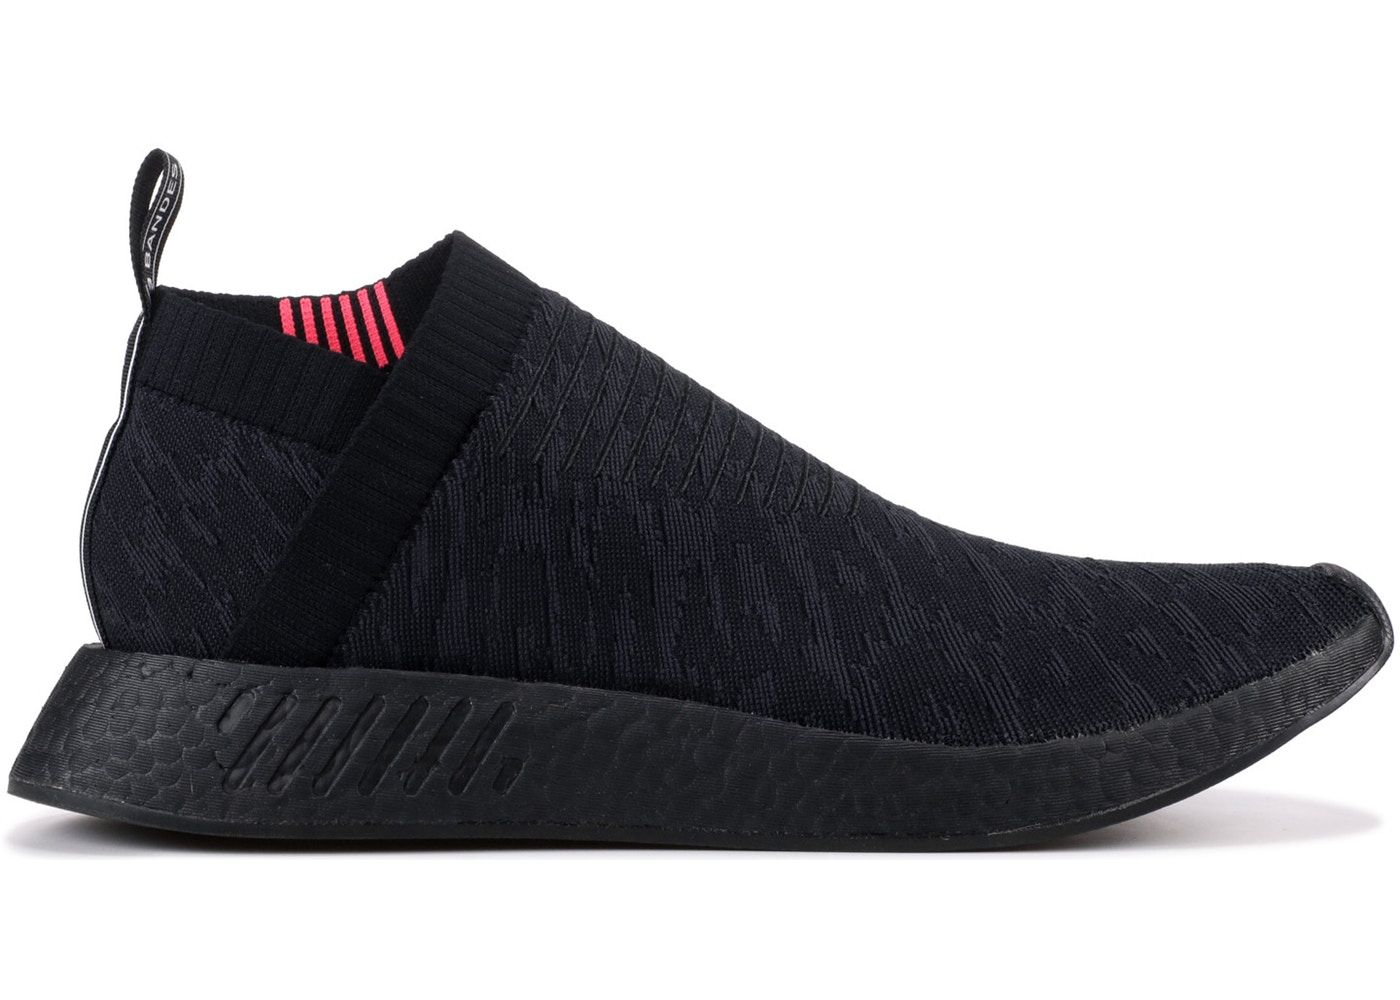 d648a7b9 Check out the adidas NMD CS2 Triple Black Shock Pink available on StockX